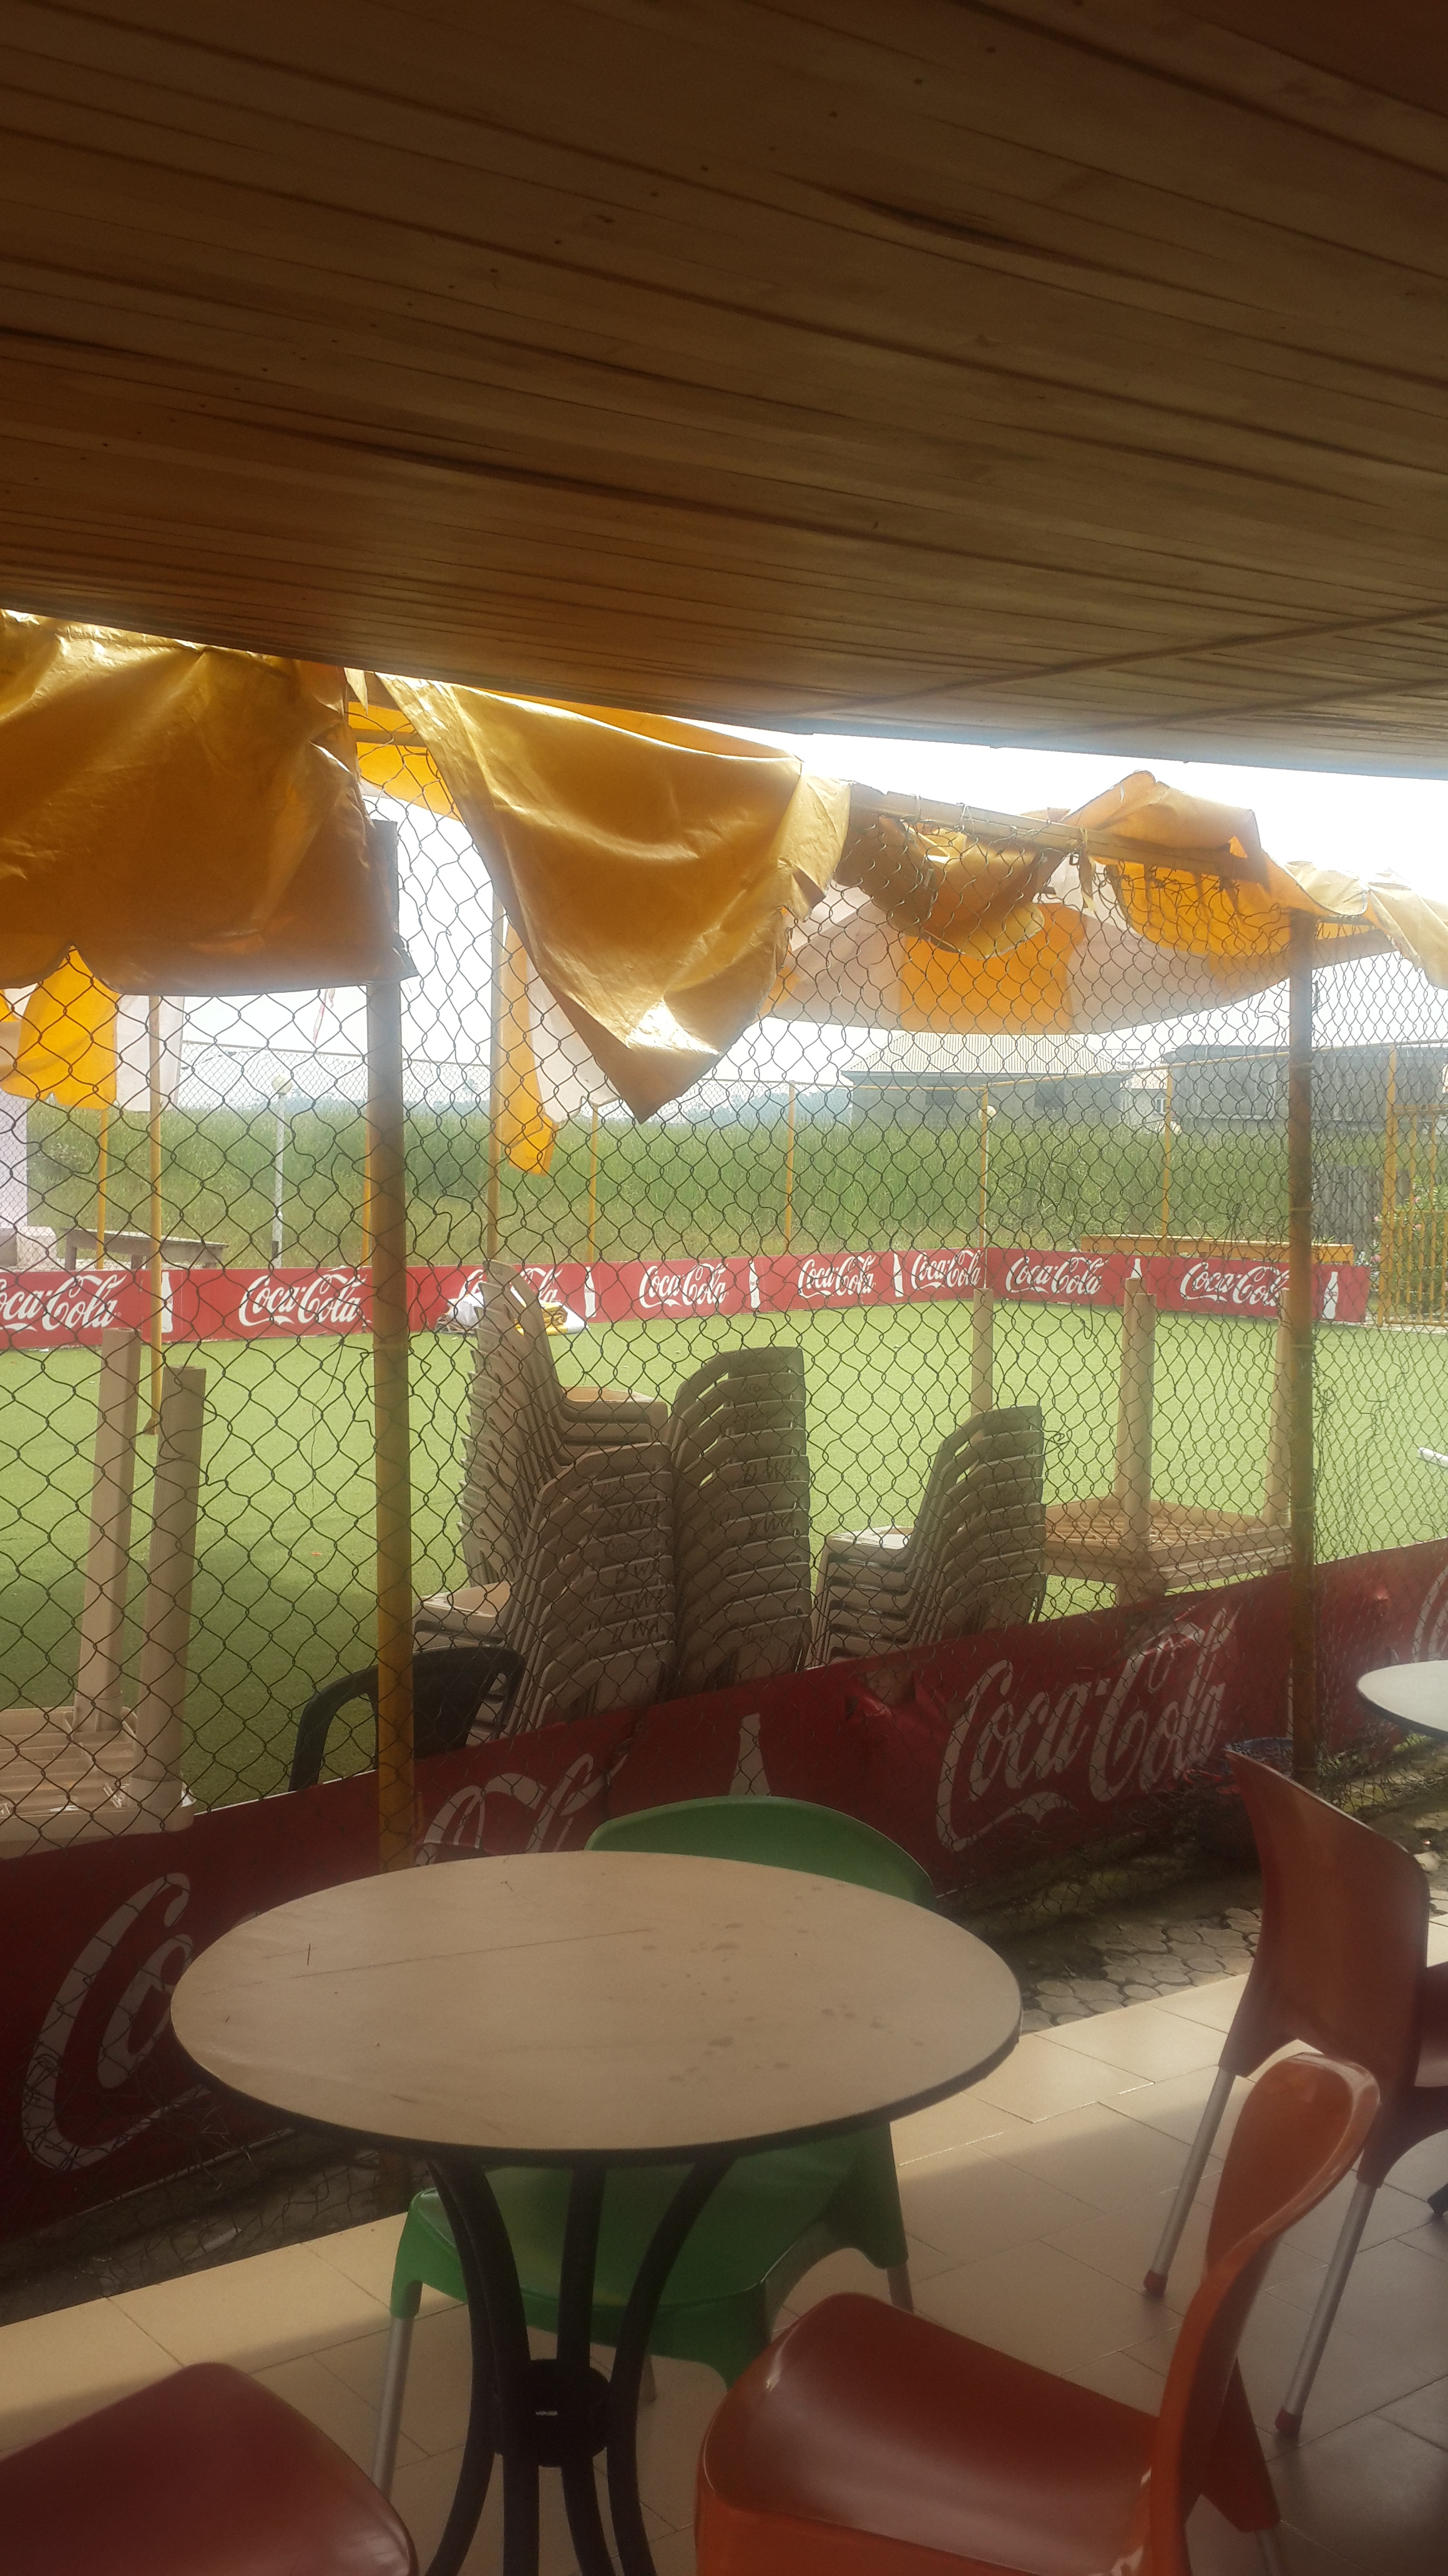 Area available to rent for parties. Includes canopies and chairs.